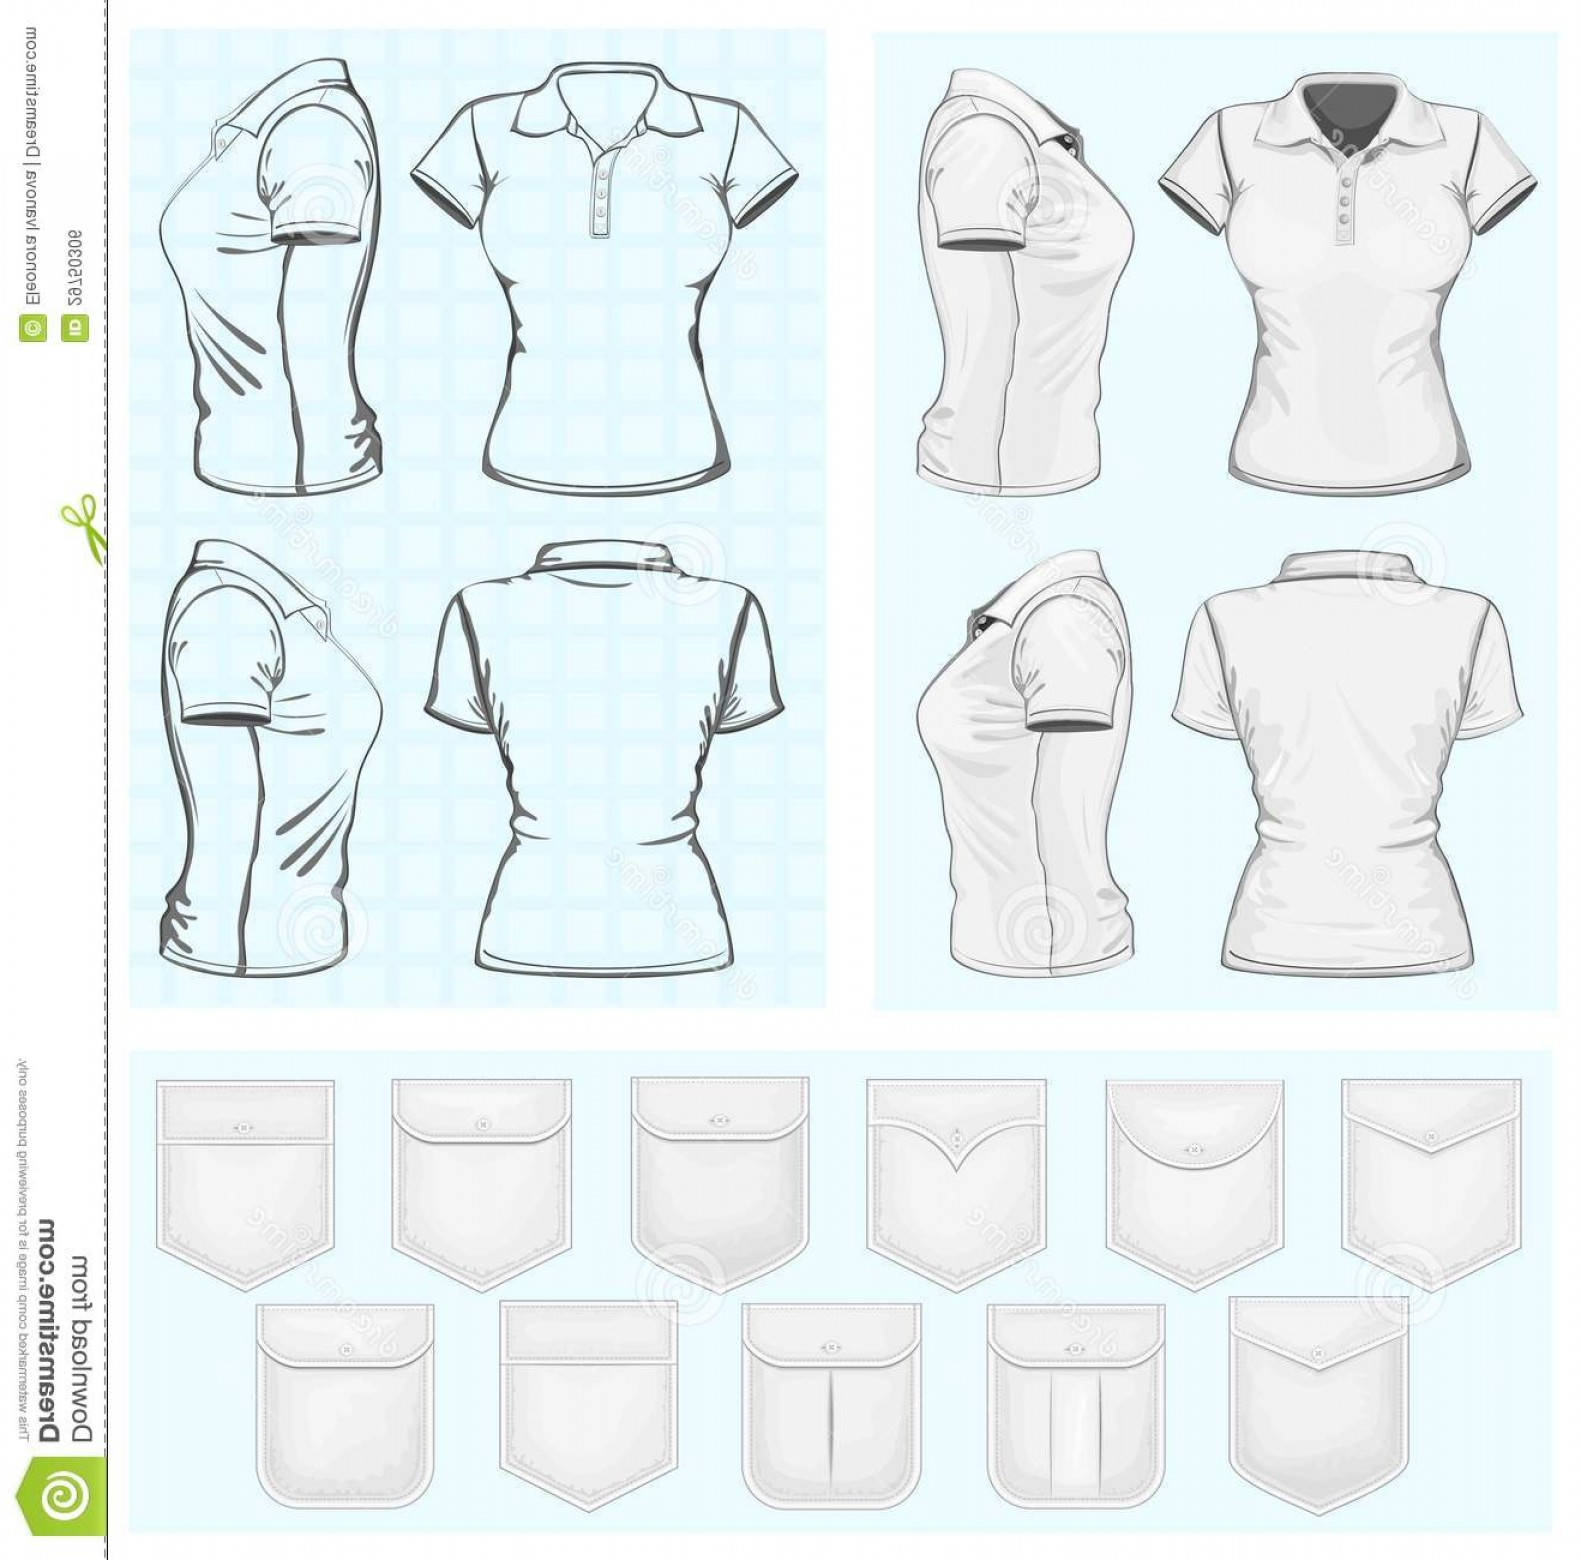 Female Polo Shirt Vector Template: Royalty Free Stock Image Vector Women S Polo Shirt Design Templates Image